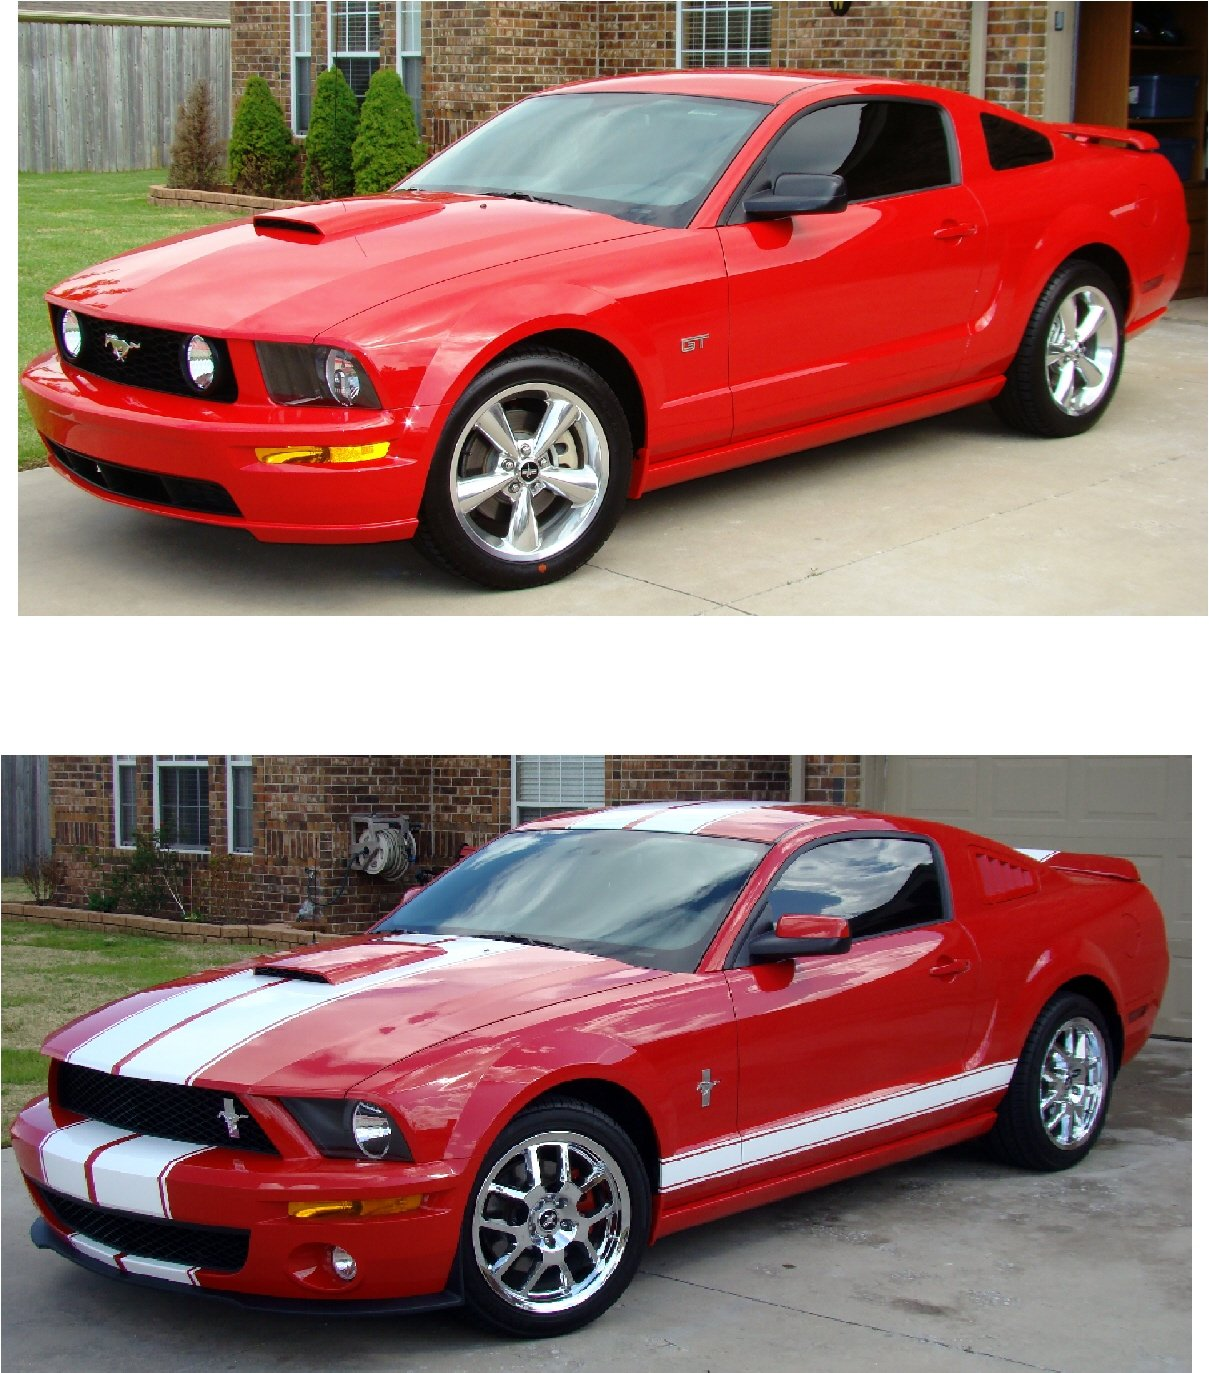 Lets see your before and after exterior mods photos - Mustang modification ...